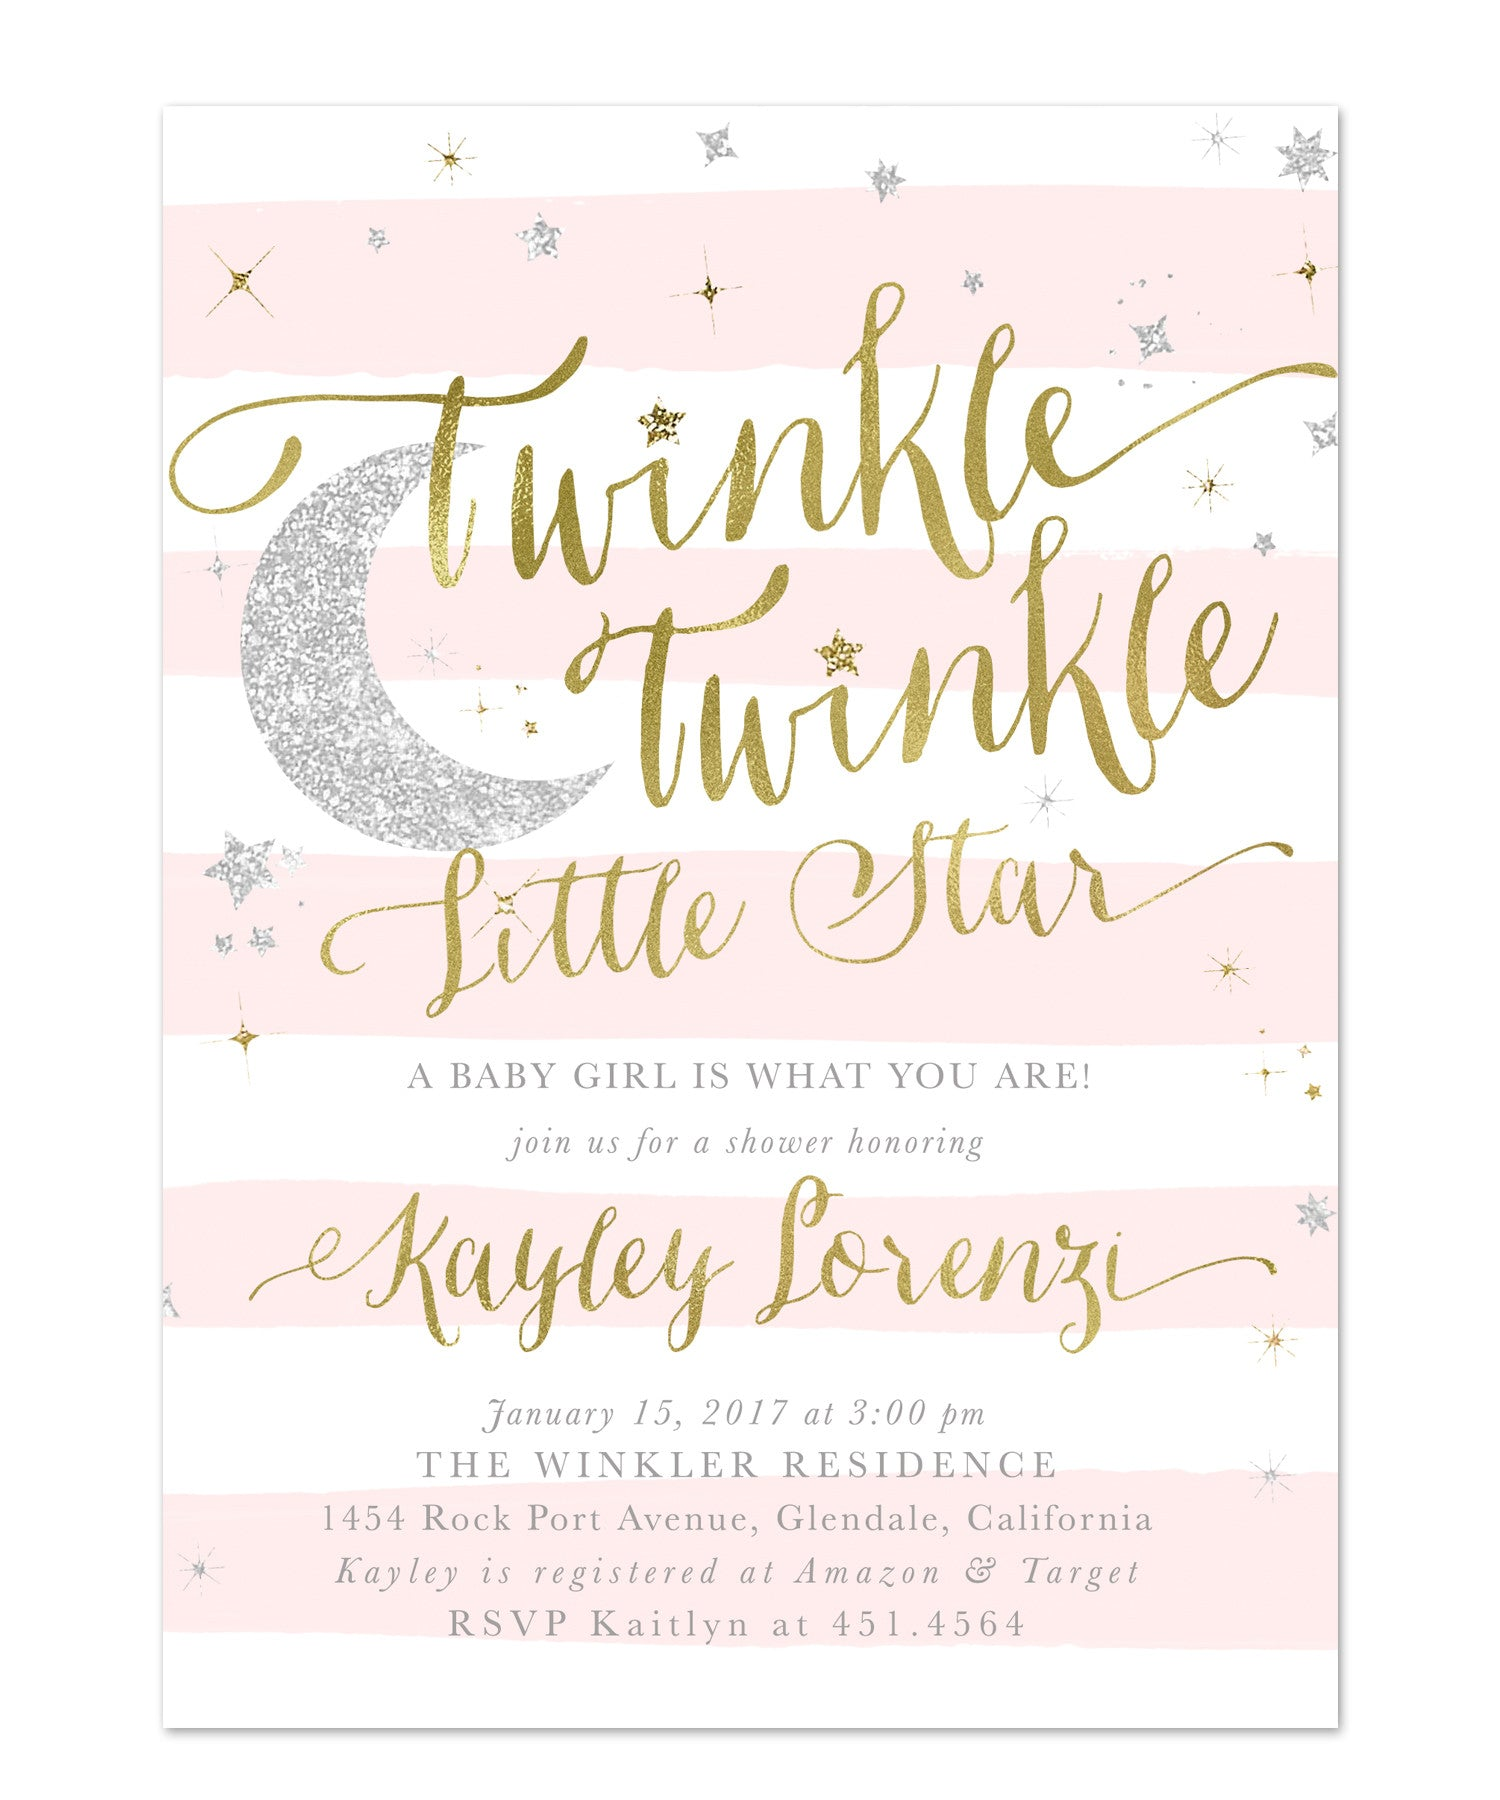 Twinkle Twinkle Little Star Girl Baby Shower or Sprinkle